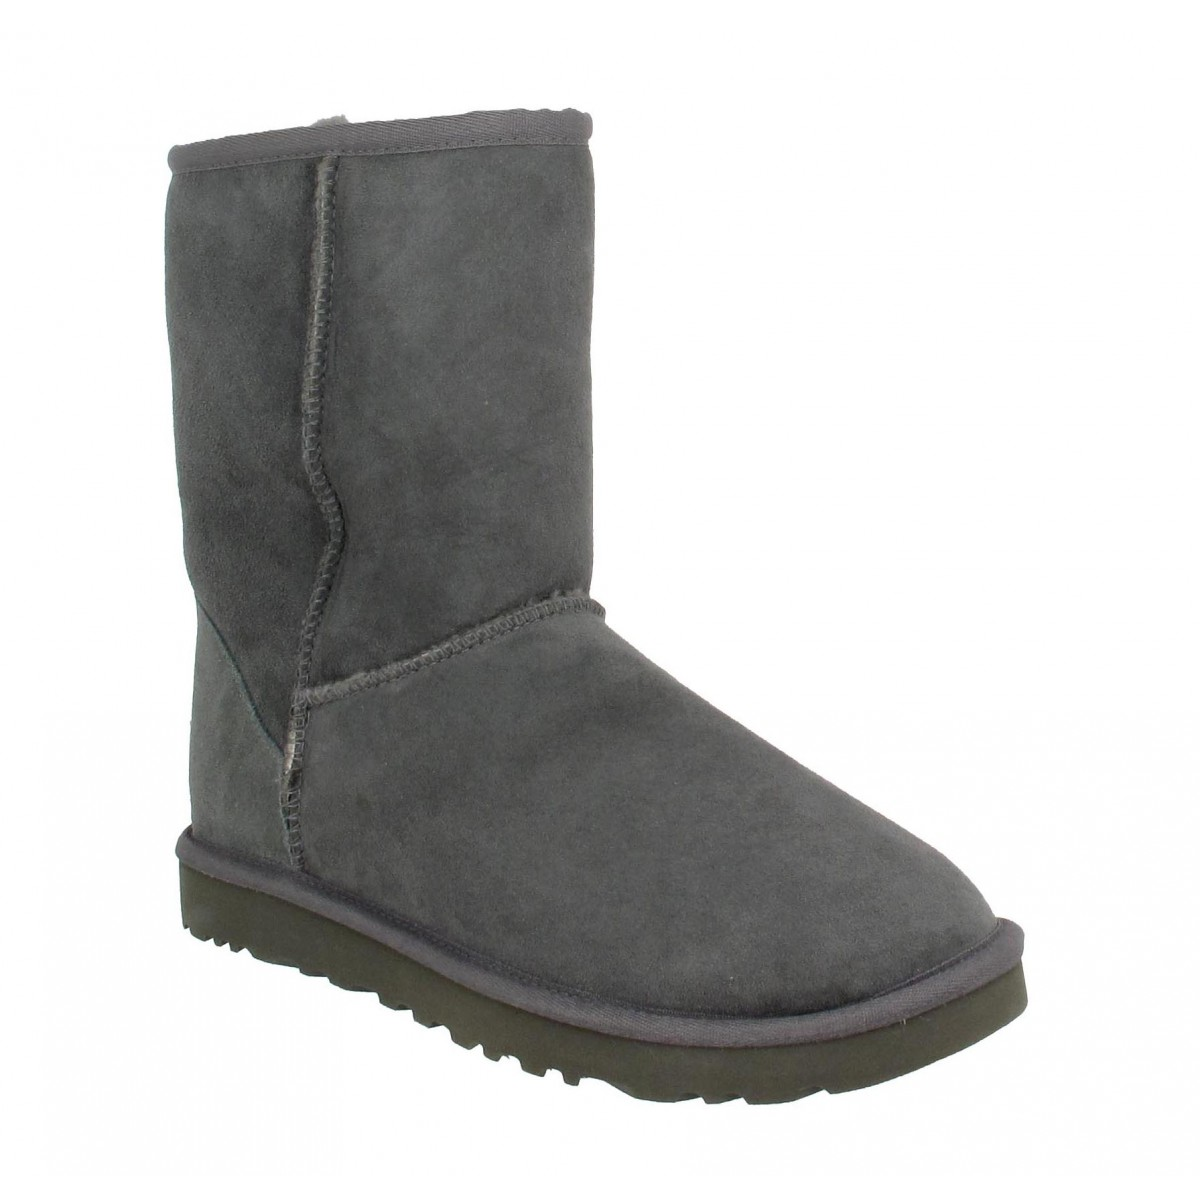 9a8ba7dc93199 Tricot Ugg Bottes Classic Cardy - cheap watches mgc-gas.com